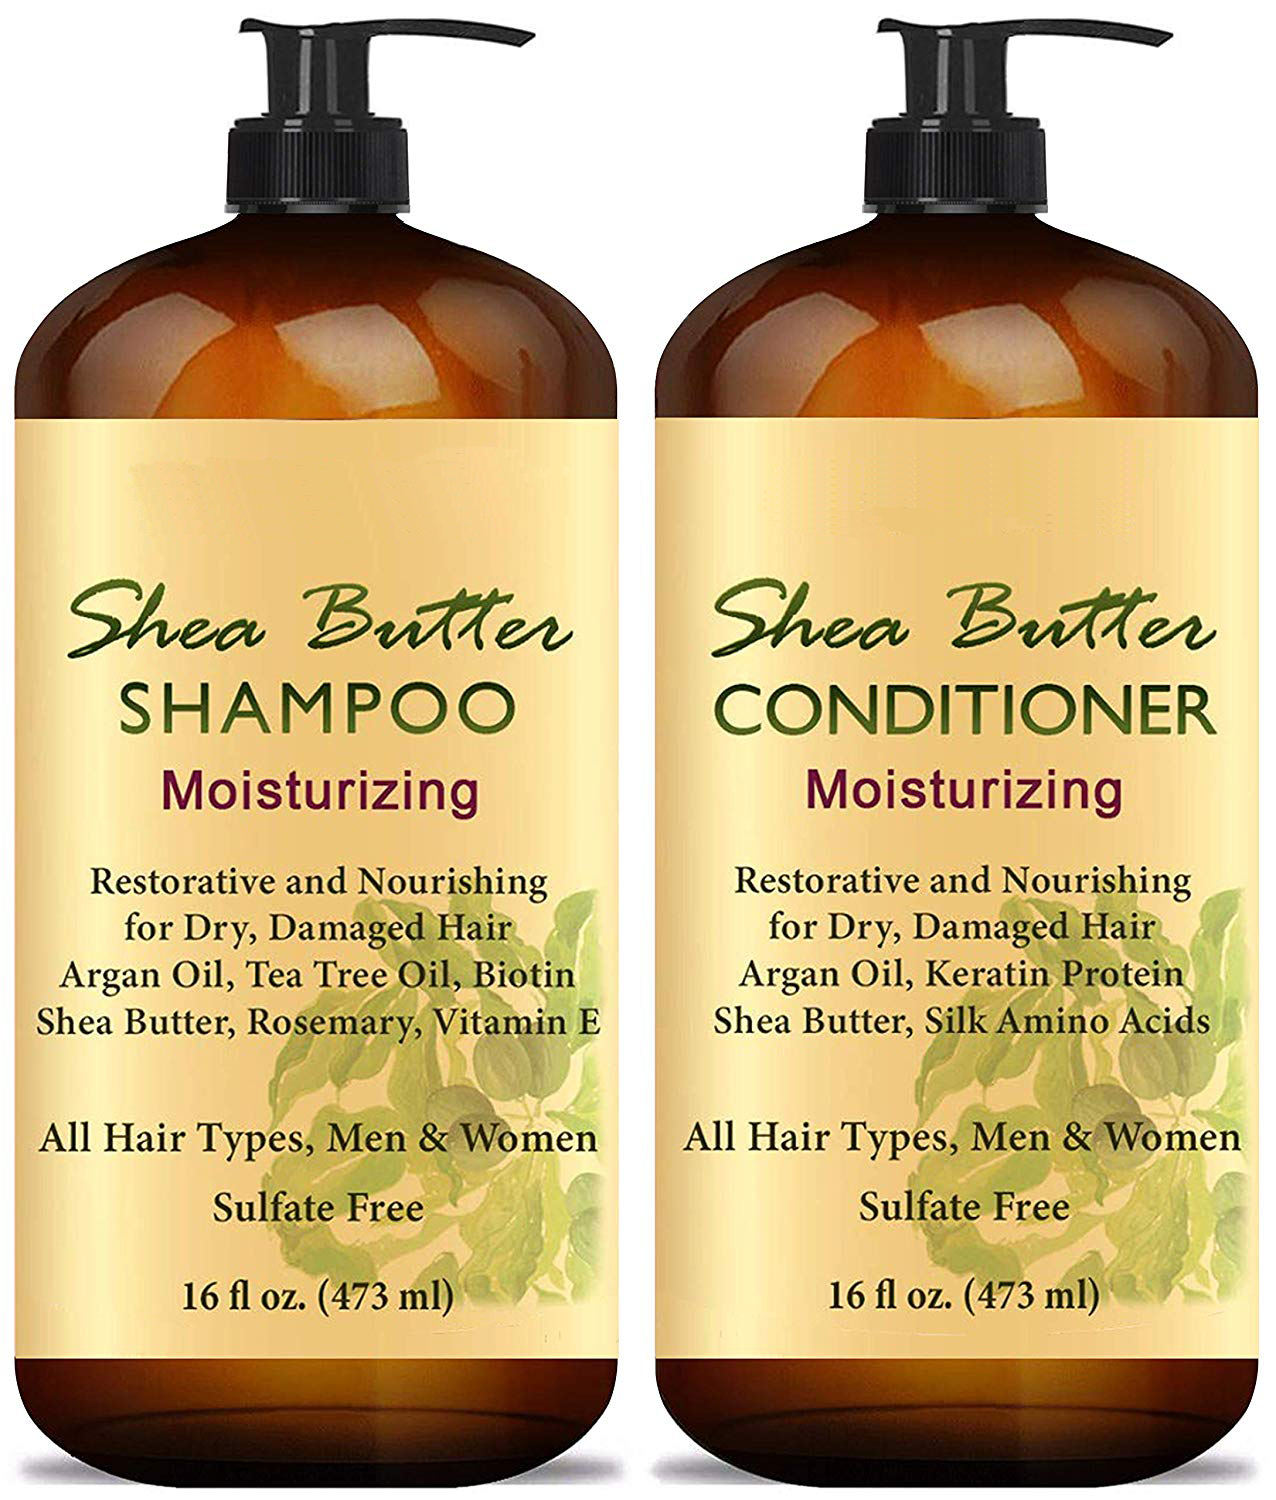 400Ml Private Label Mini Wash Shampoo For Men Aloe Grow Shampoo Shea Butter Moisture Shampoo